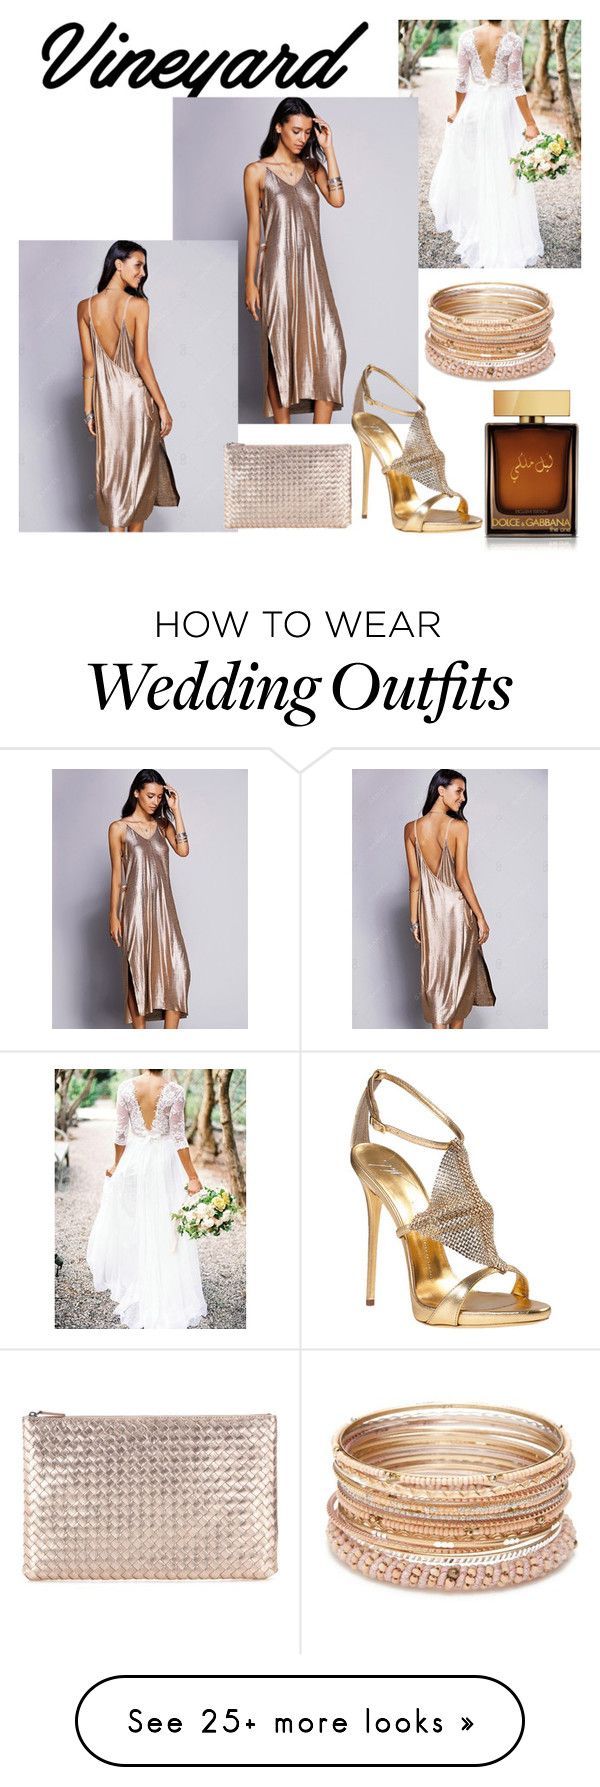 """Vineyard Wedding Guest"" by lgreenst on Polyvore featuring Giuseppe Zanotti, Red Camel, Bottega Veneta, Dolce&Gabbana, napa, winerywedding, bestdressedguest and vineyardwedding"